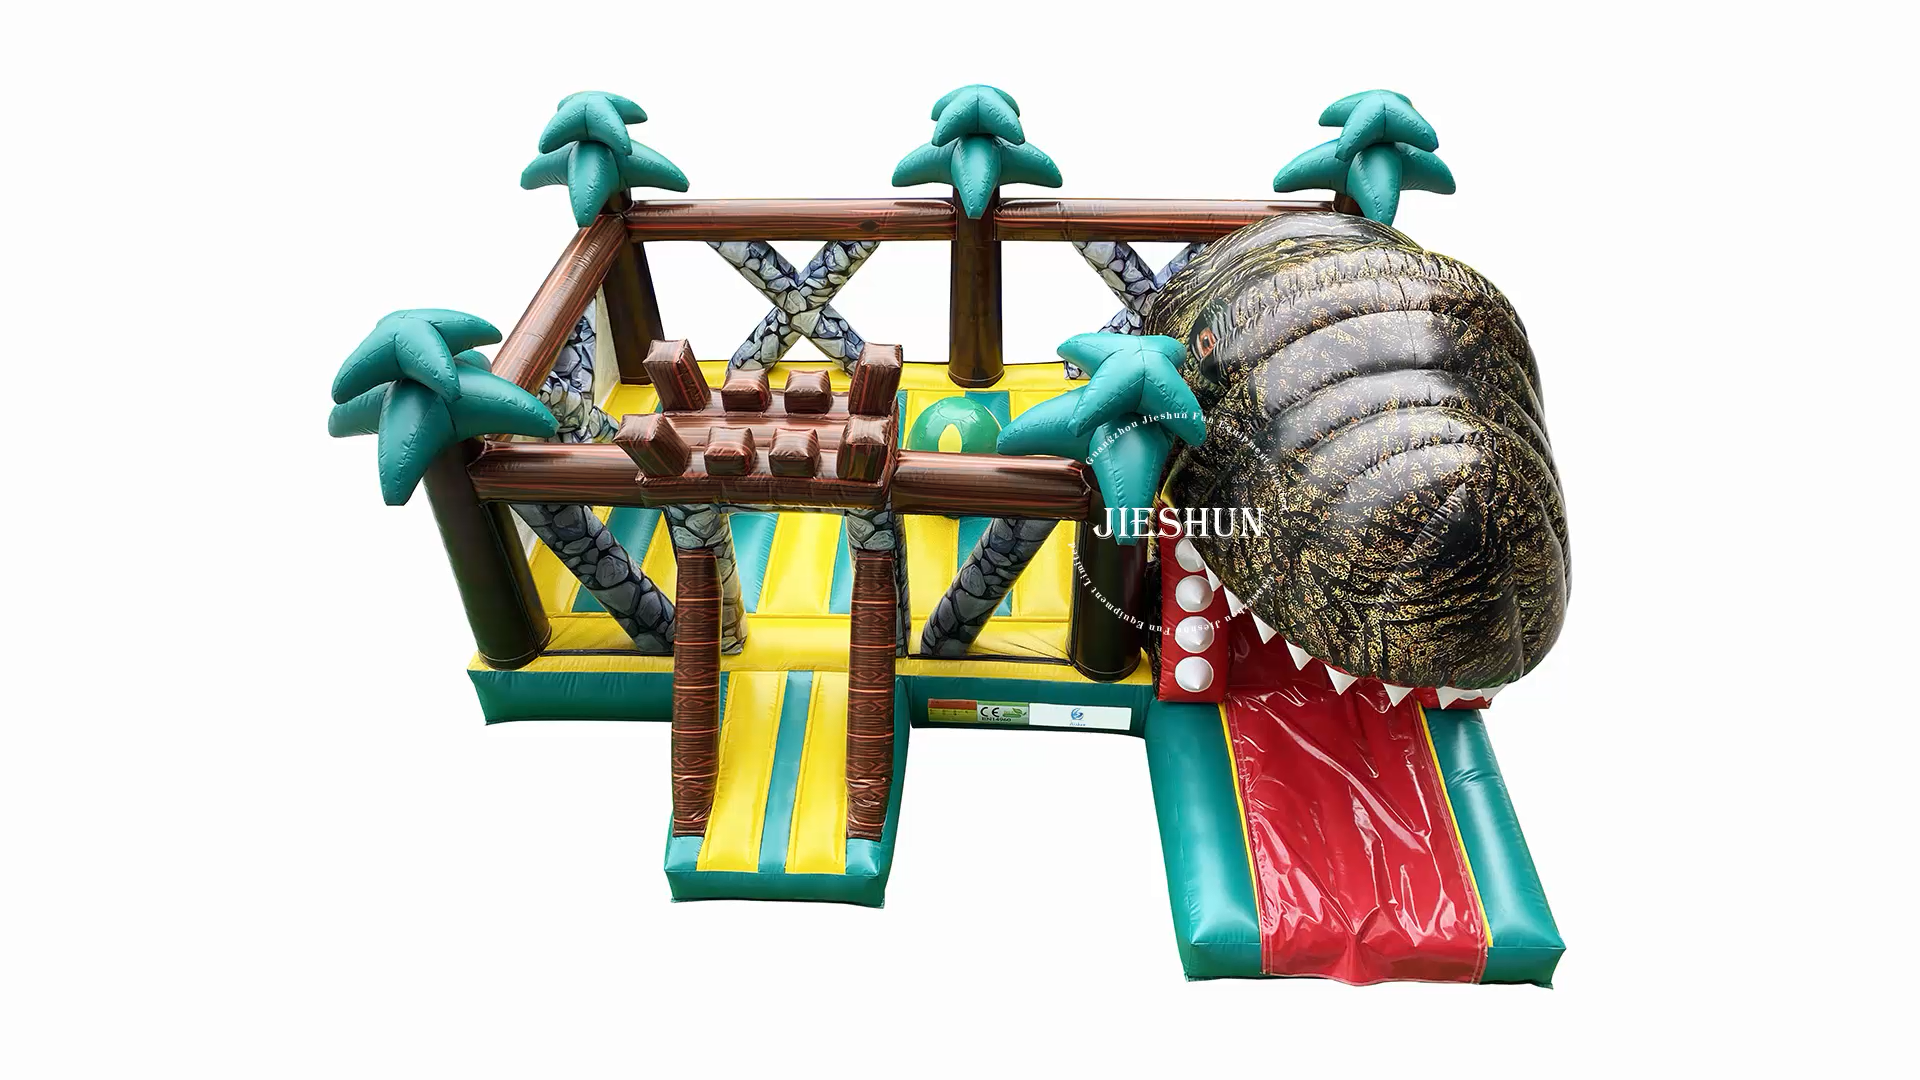 Custom Inflatable Bouncer Adults and Kids Lbig Playground Dinosaur Bounce House Inflatable Jumping Castle 5 to 7 Years Unisex UL